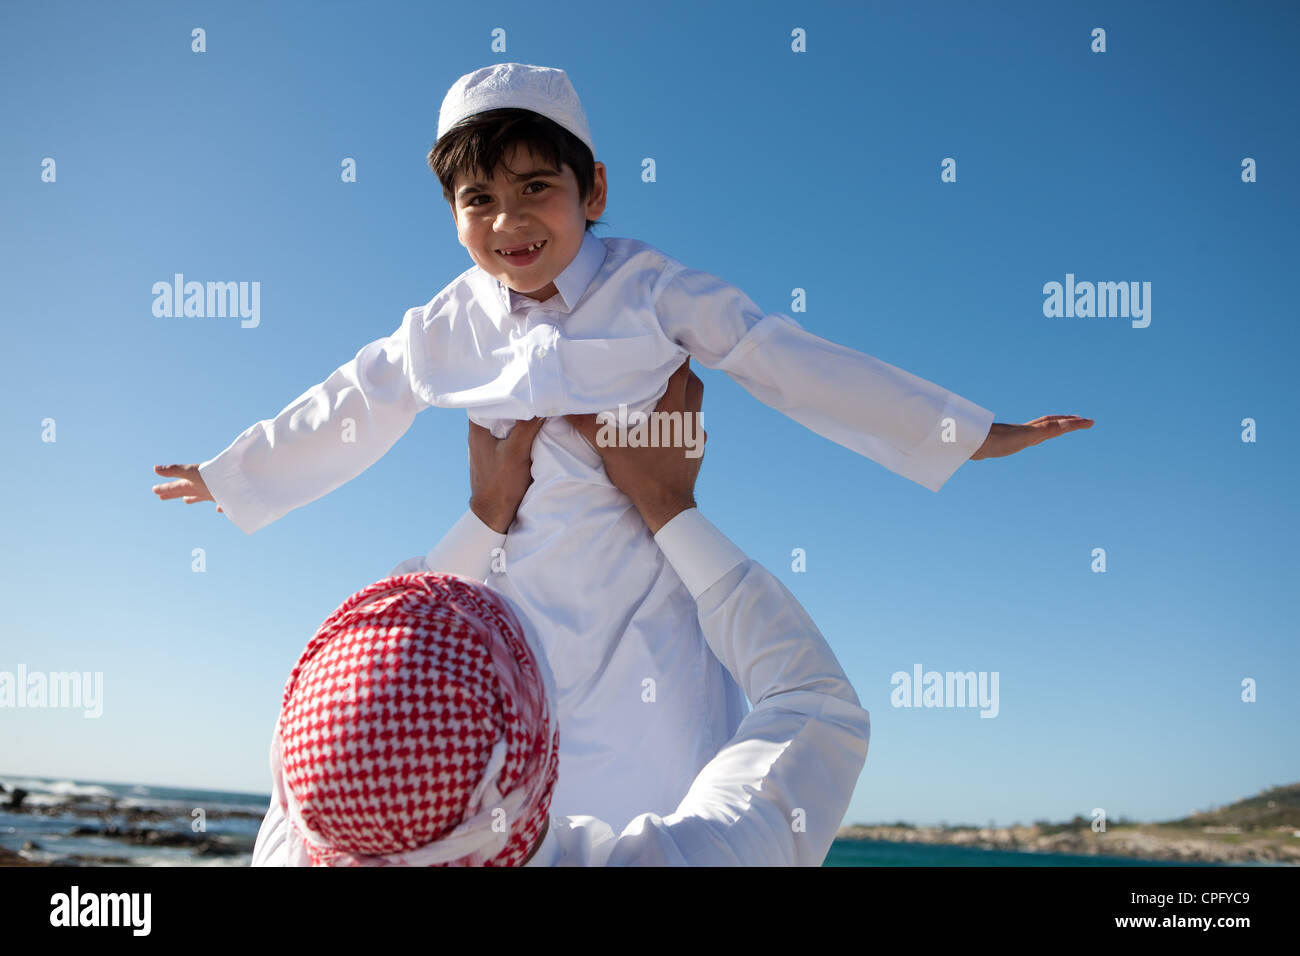 Portrait of arab father lifting his son on beach, boy arms raised. - Stock Image